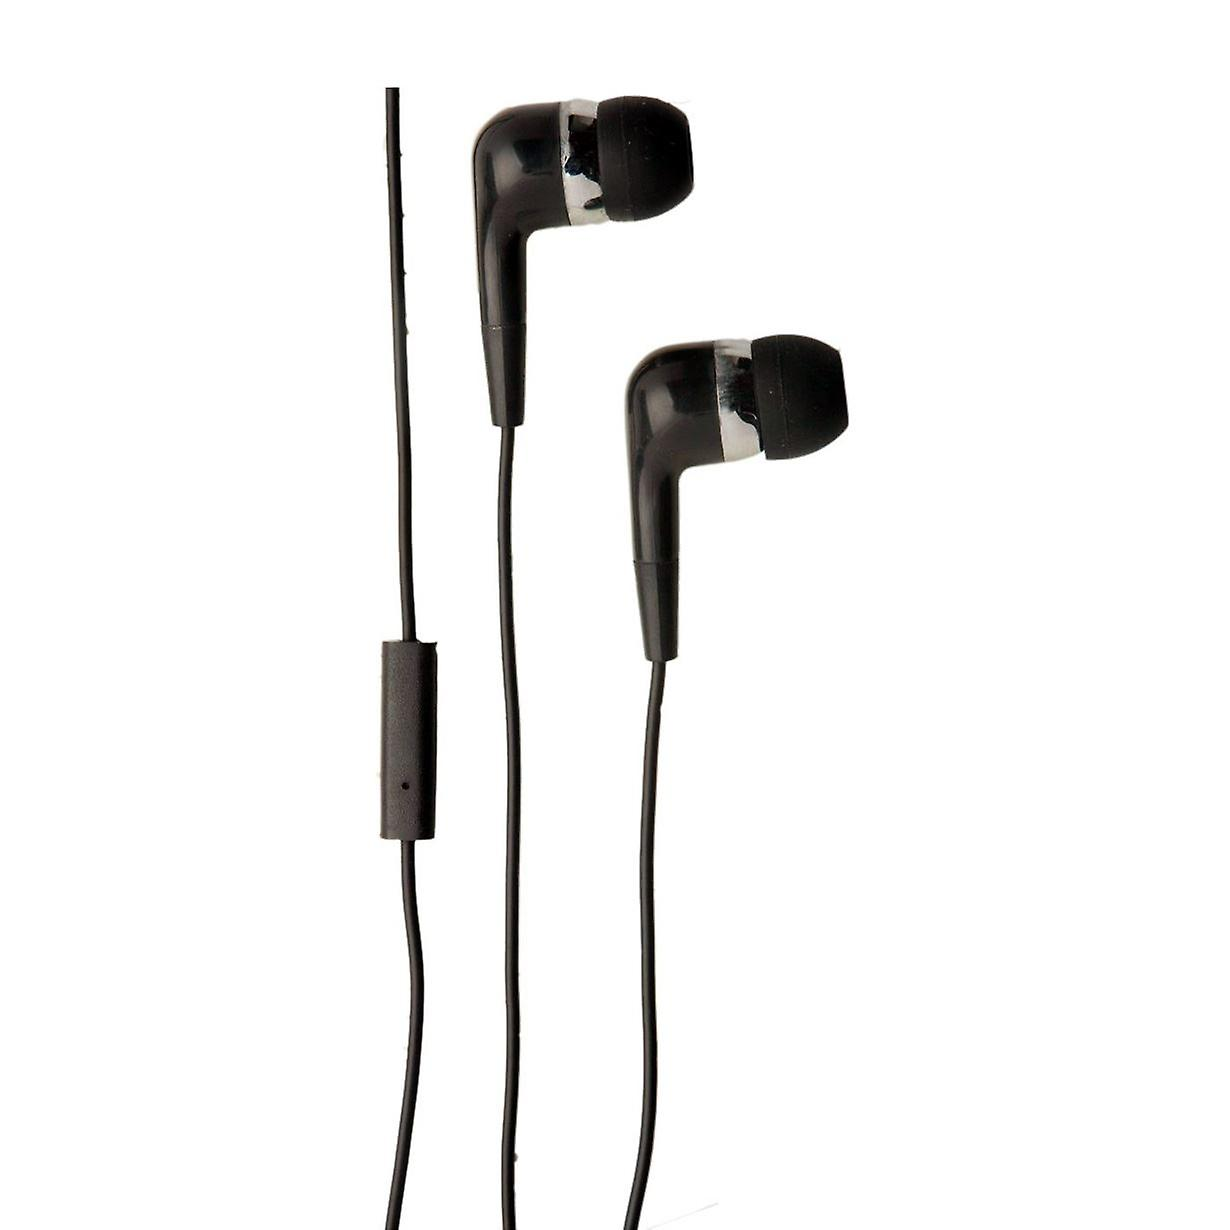 Groov-e GVEB4BK Mobile Buds Stereo Earphone with Microphone - Black